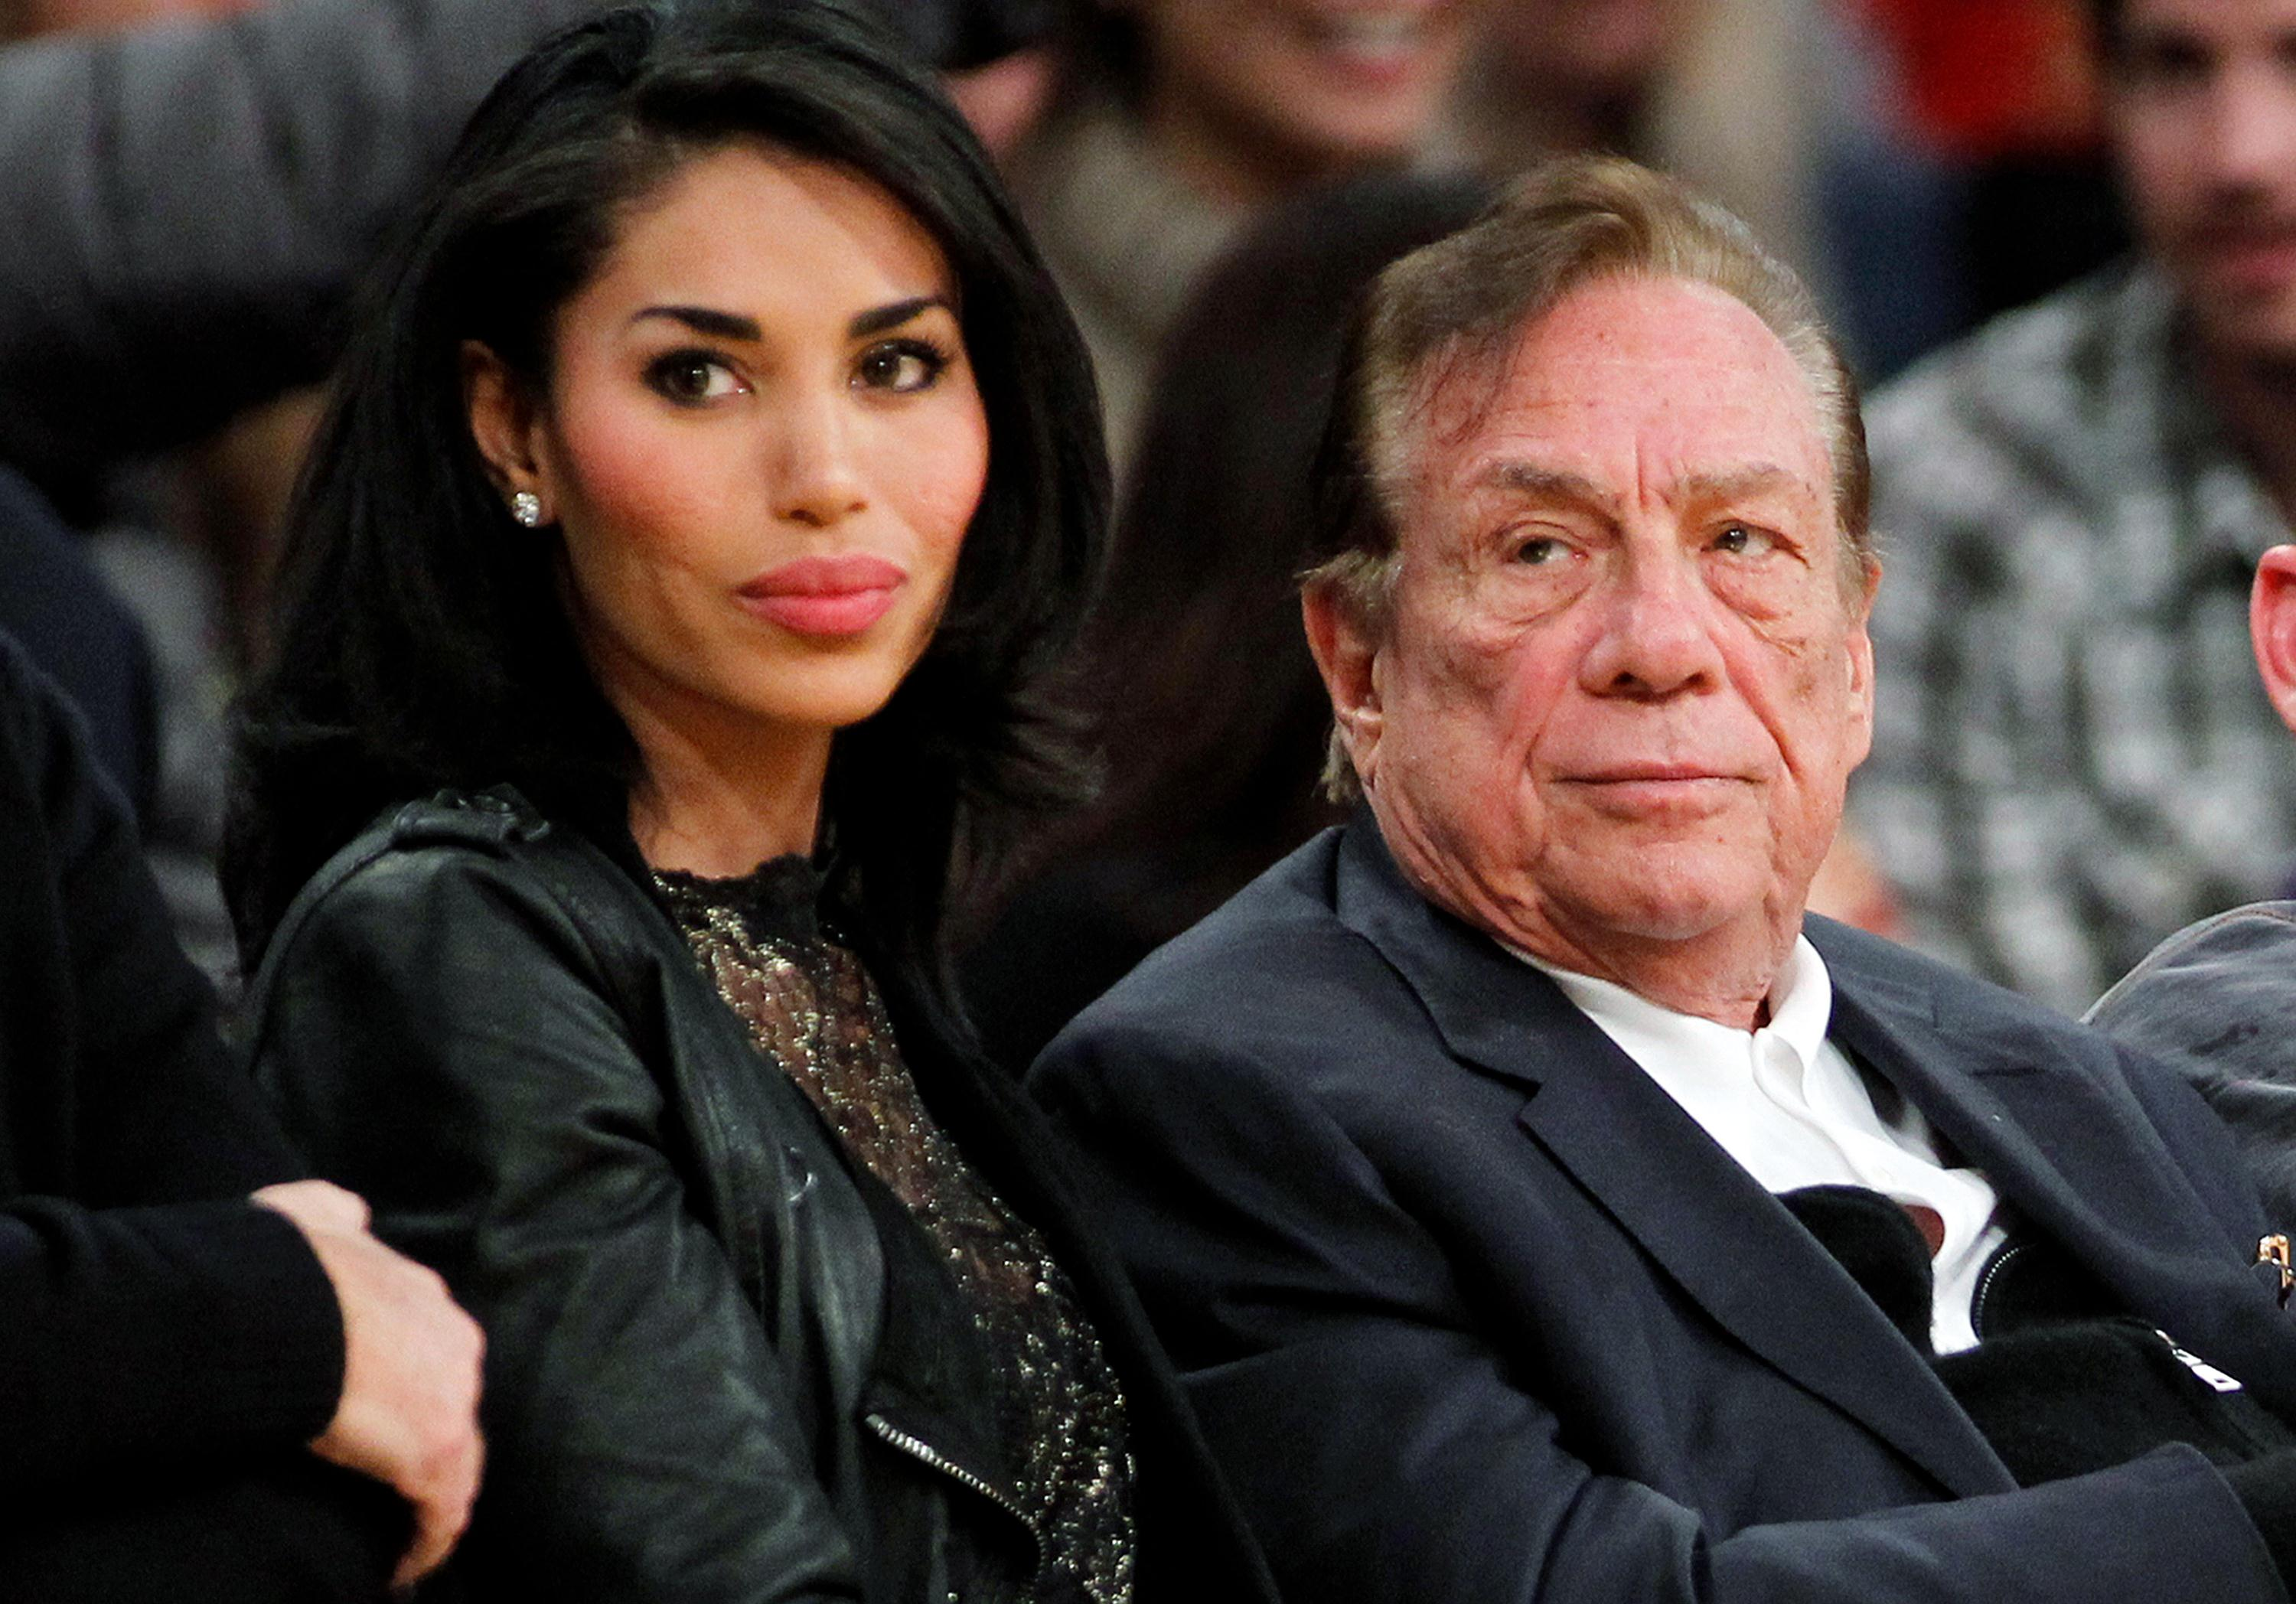 Clippers Owner Donald Sterling Fined $2.5M and Banned for Life by NBA